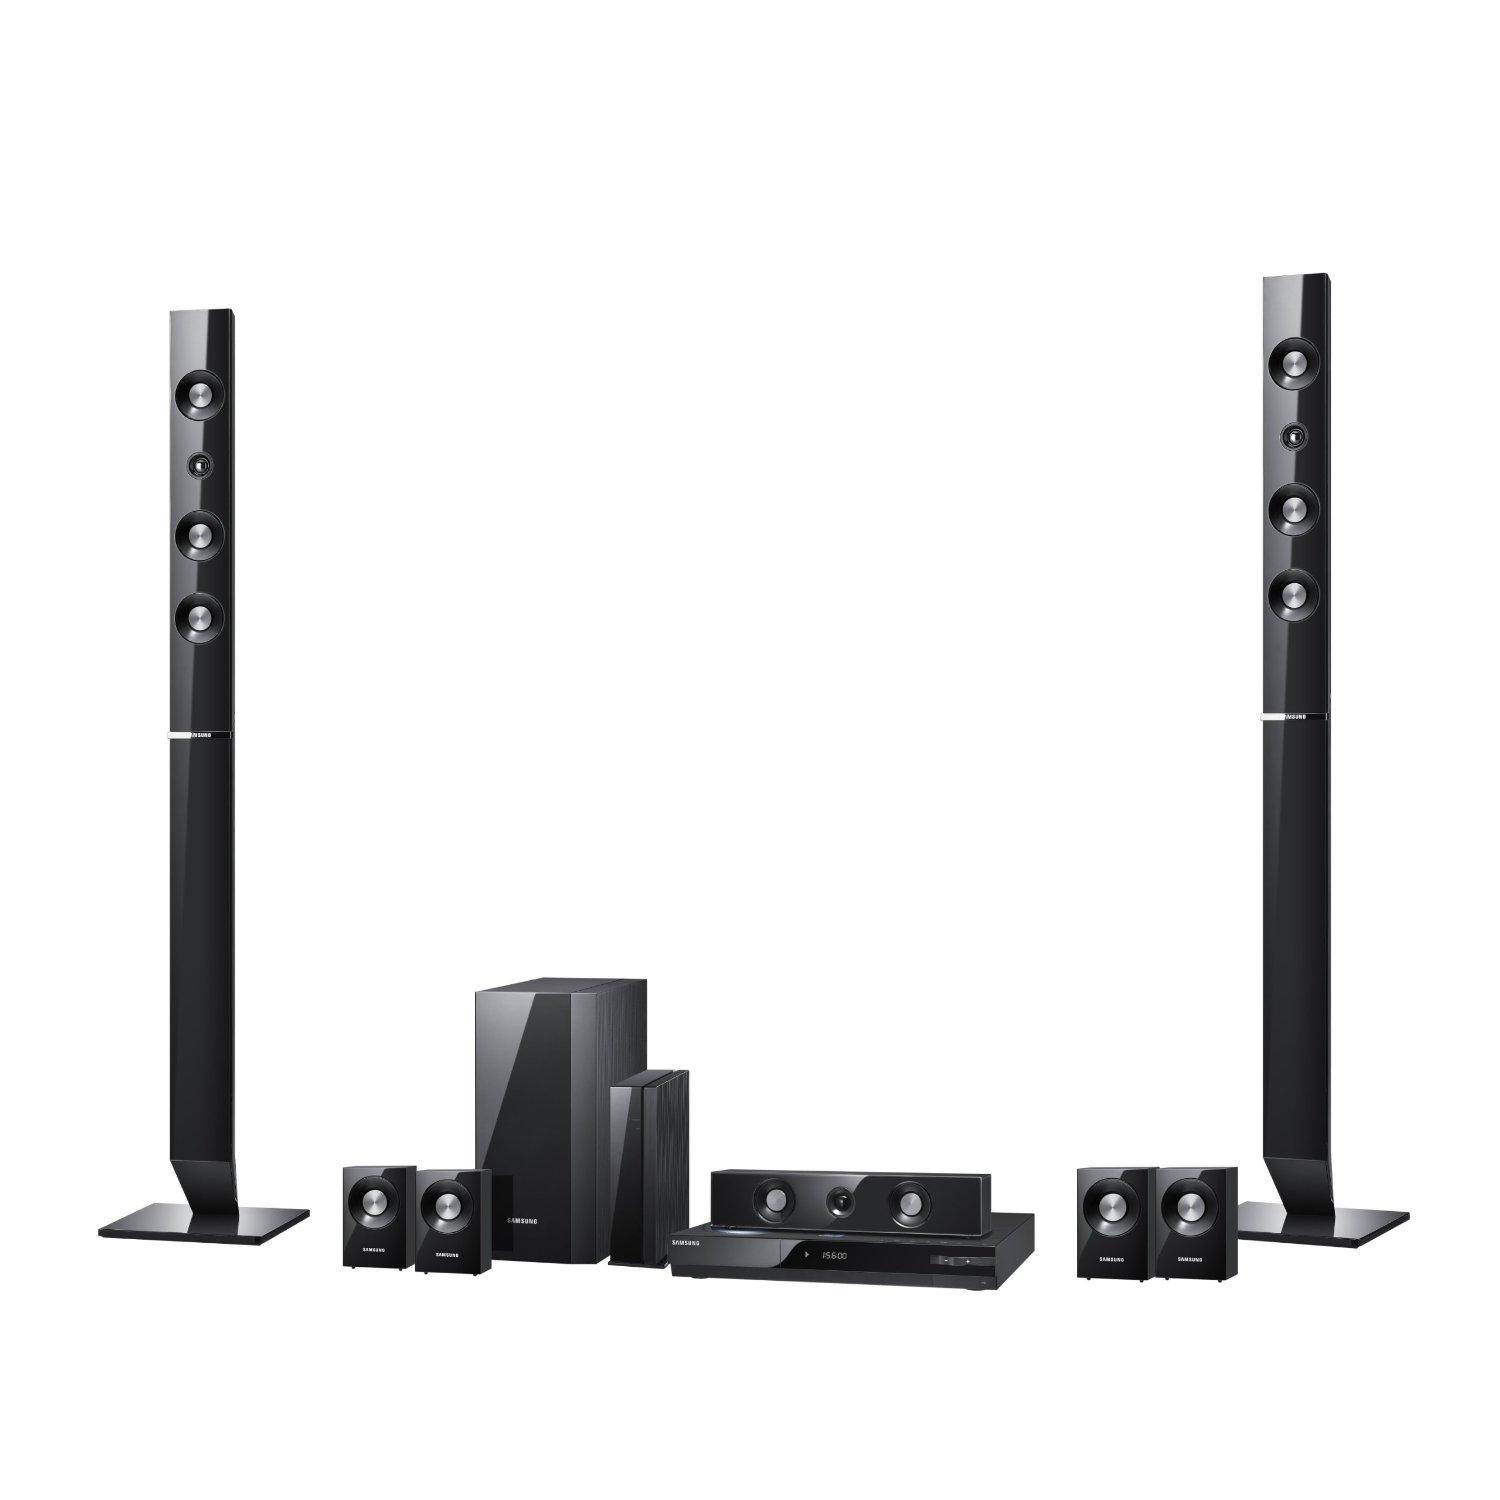 home theatre speakers samsung home theater system. Black Bedroom Furniture Sets. Home Design Ideas